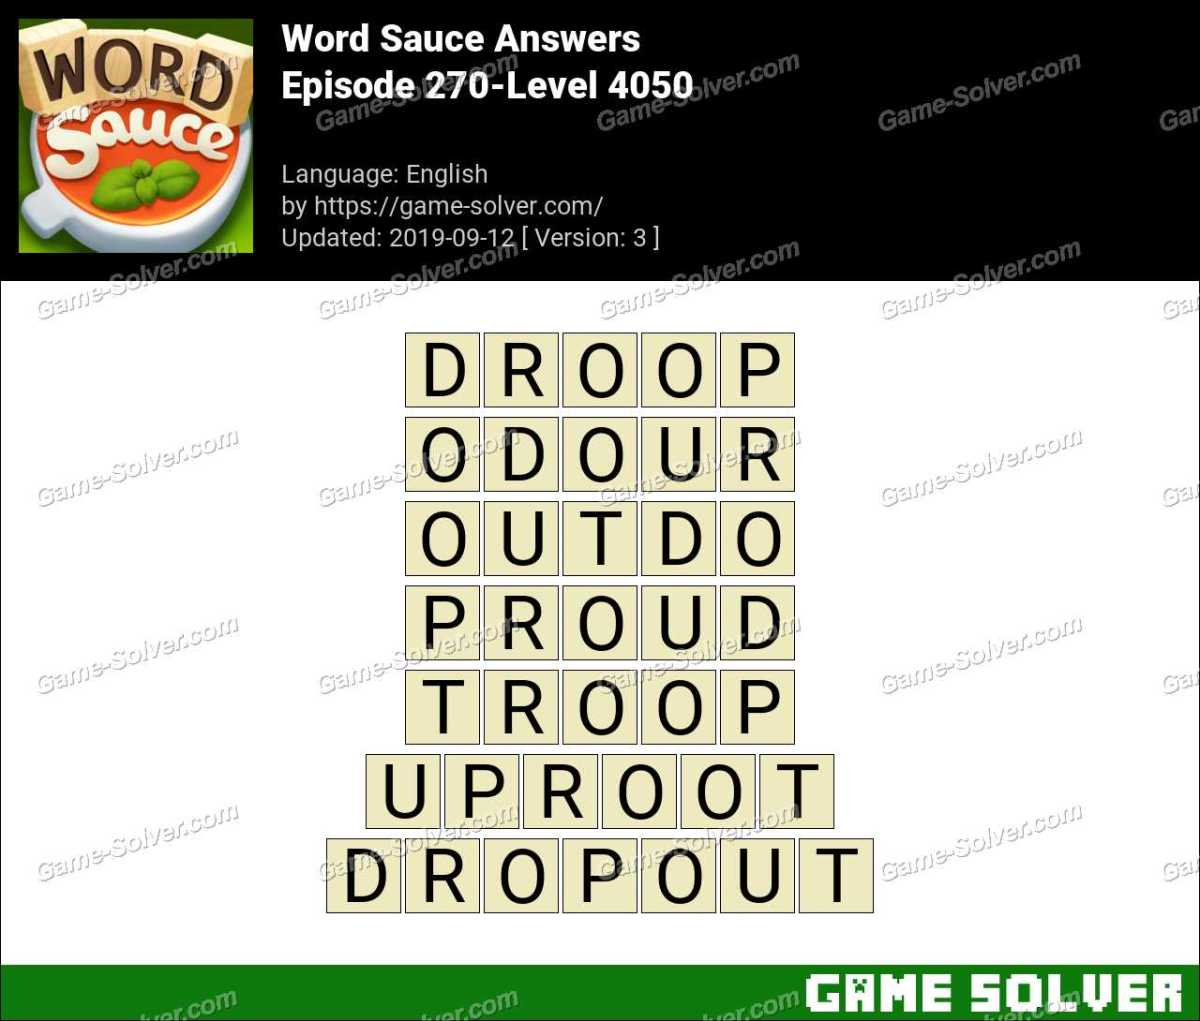 Word Sauce Episode 270-Level 4050 Answers